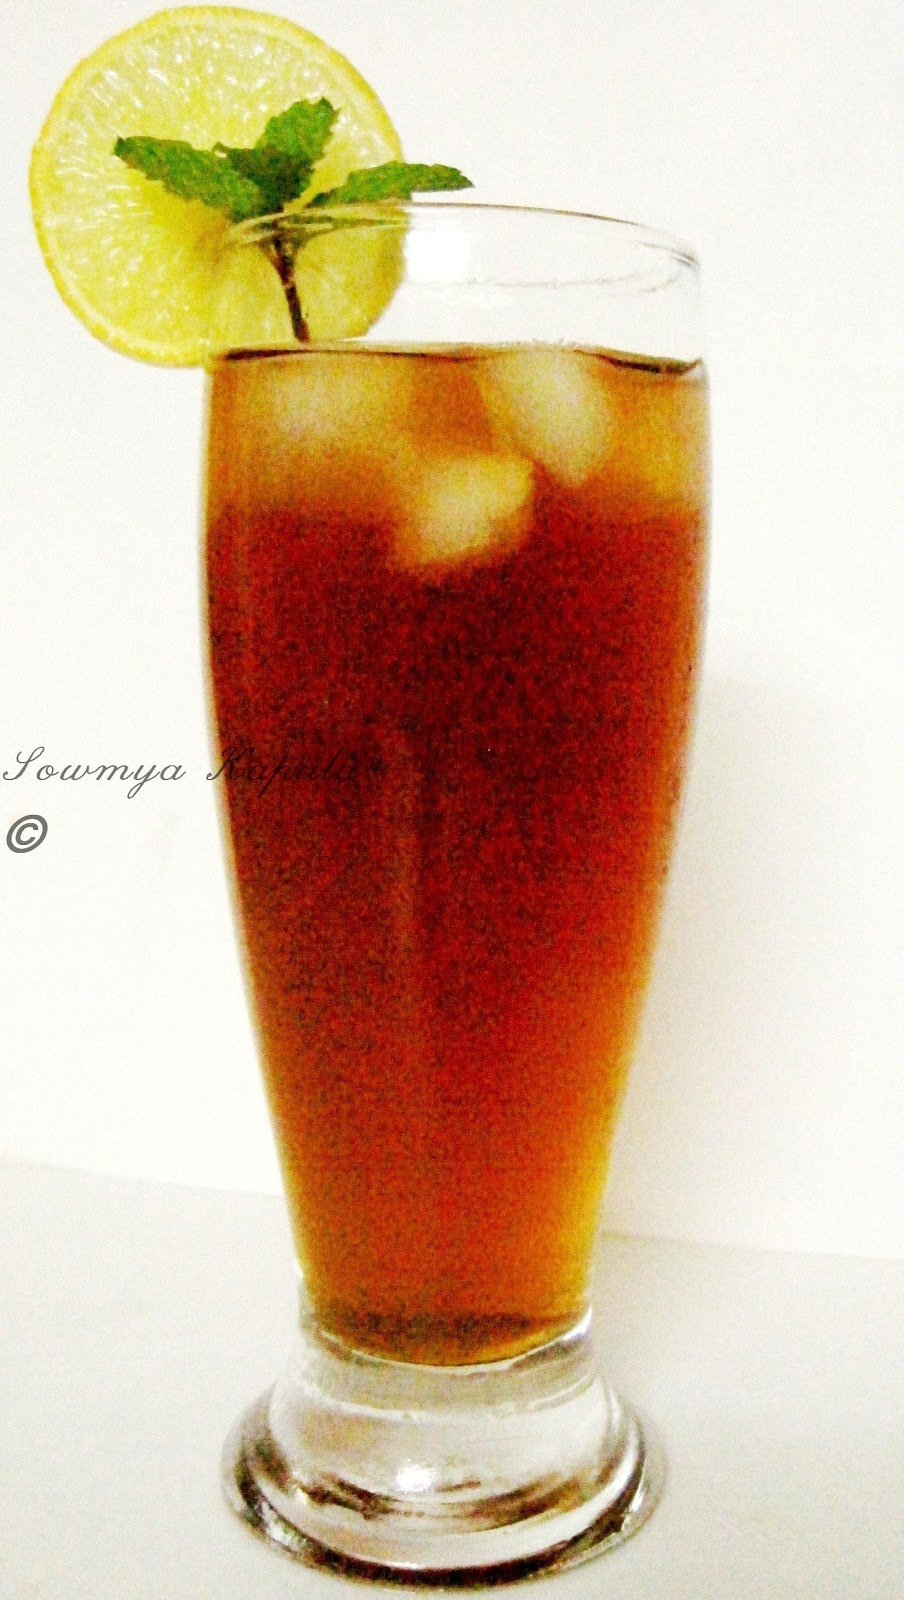 My Kitchen: Iced Tea